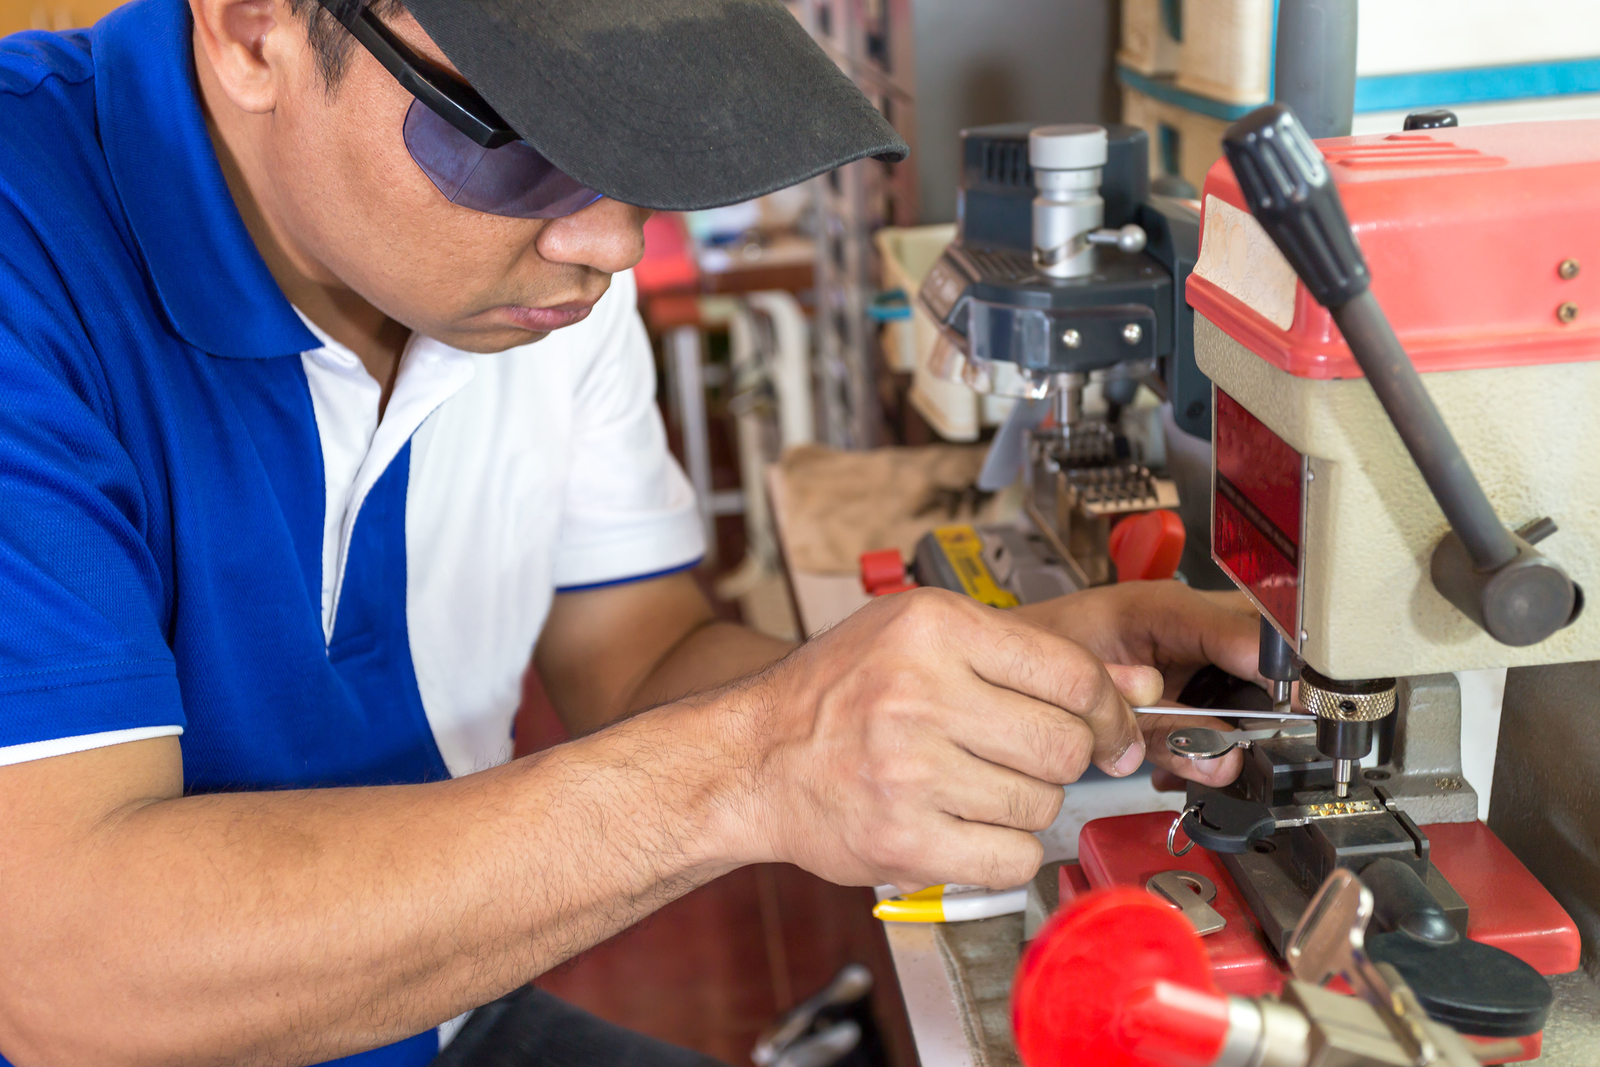 7 Reasons Why Your Business Needs an Inspection From a Commercial Locksmith